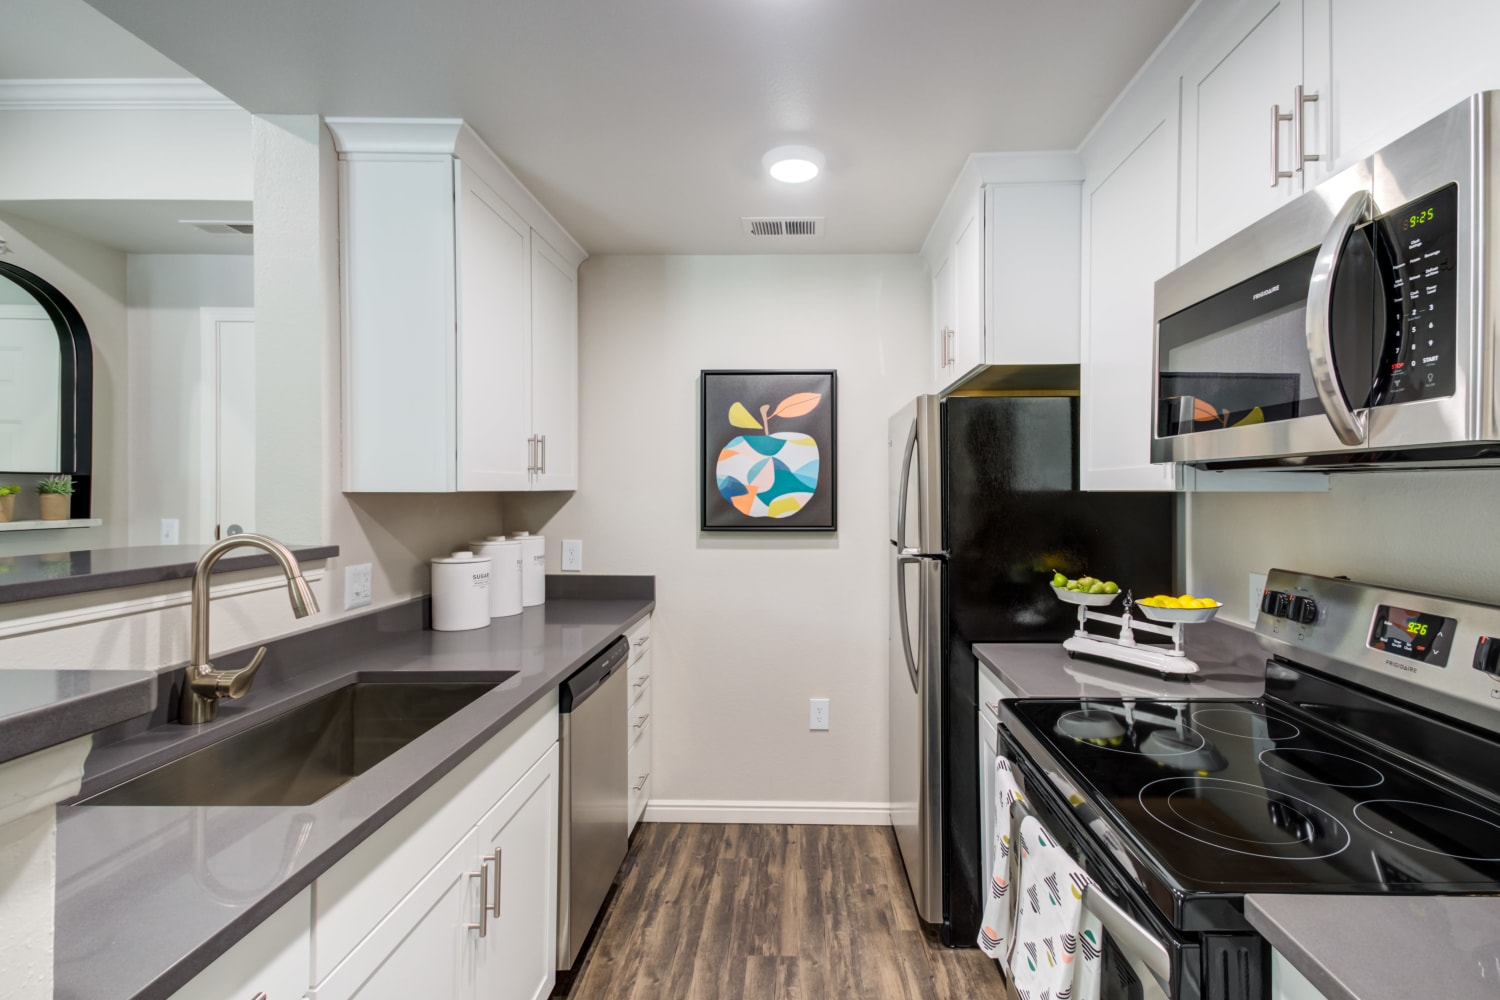 High end appliances and kitchen finishes in an apartment at Irving Schoolhouse Apartments in Salt Lake City, Utah